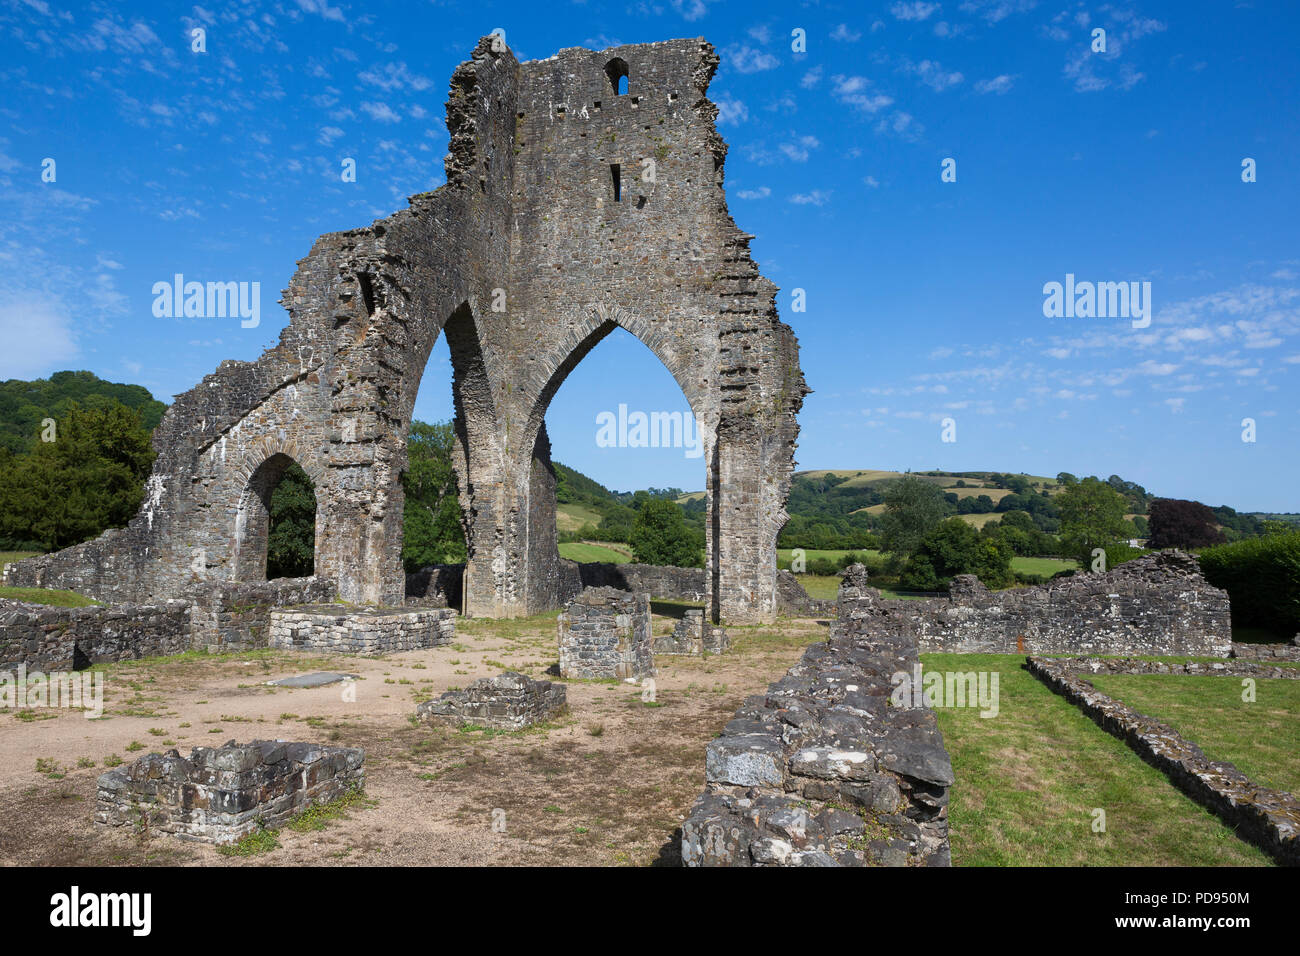 Ruins of  the Premonstratensian Talley Abbey, Carmarthenshire, Wales - Stock Image